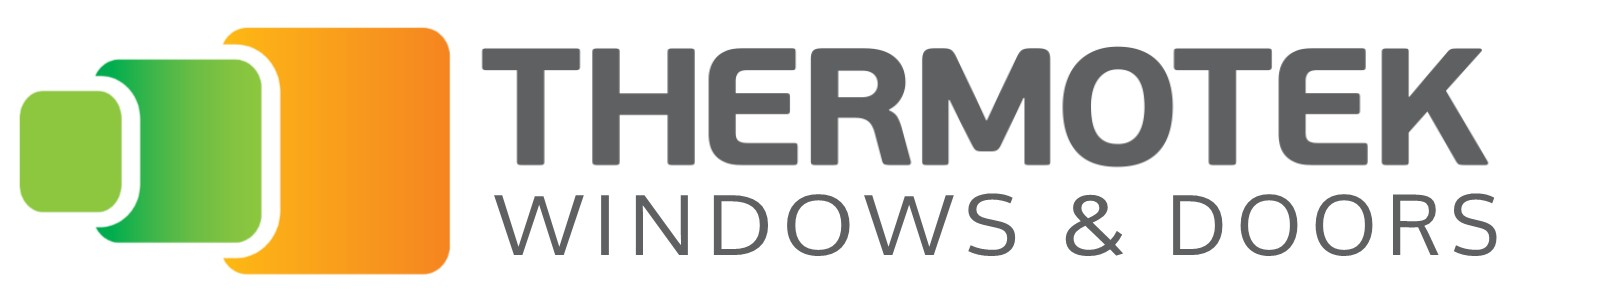 Thermotek Windows